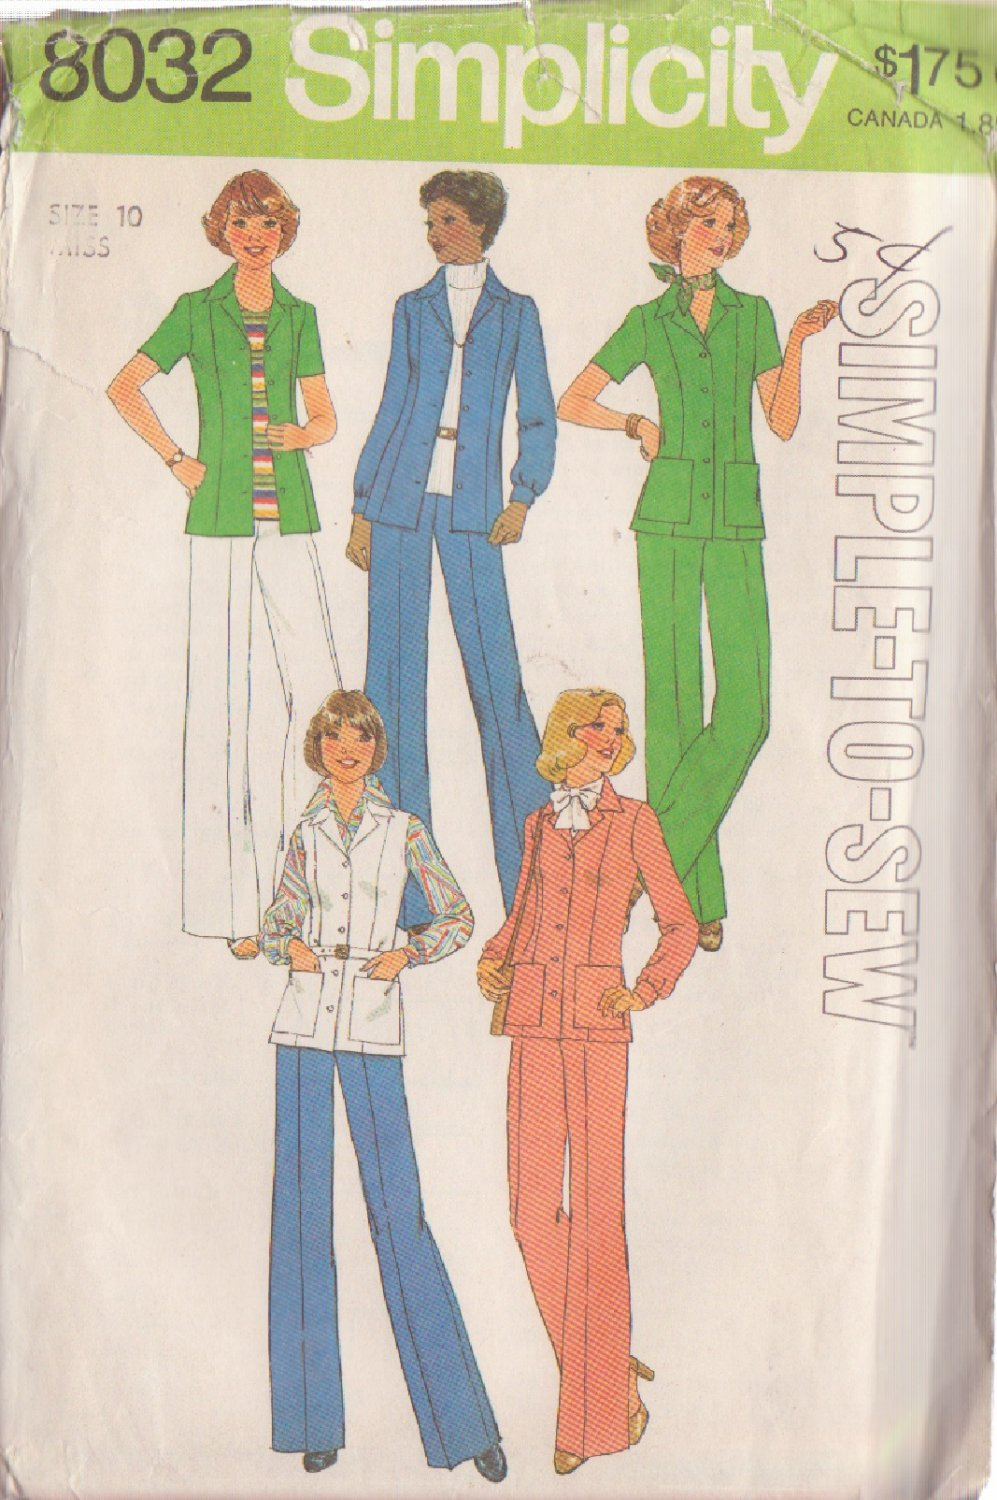 SIMPLICITY PATTERN 8032 MISSES' SHIRT-JACKET, PANTS SIZE 10 UNCUT